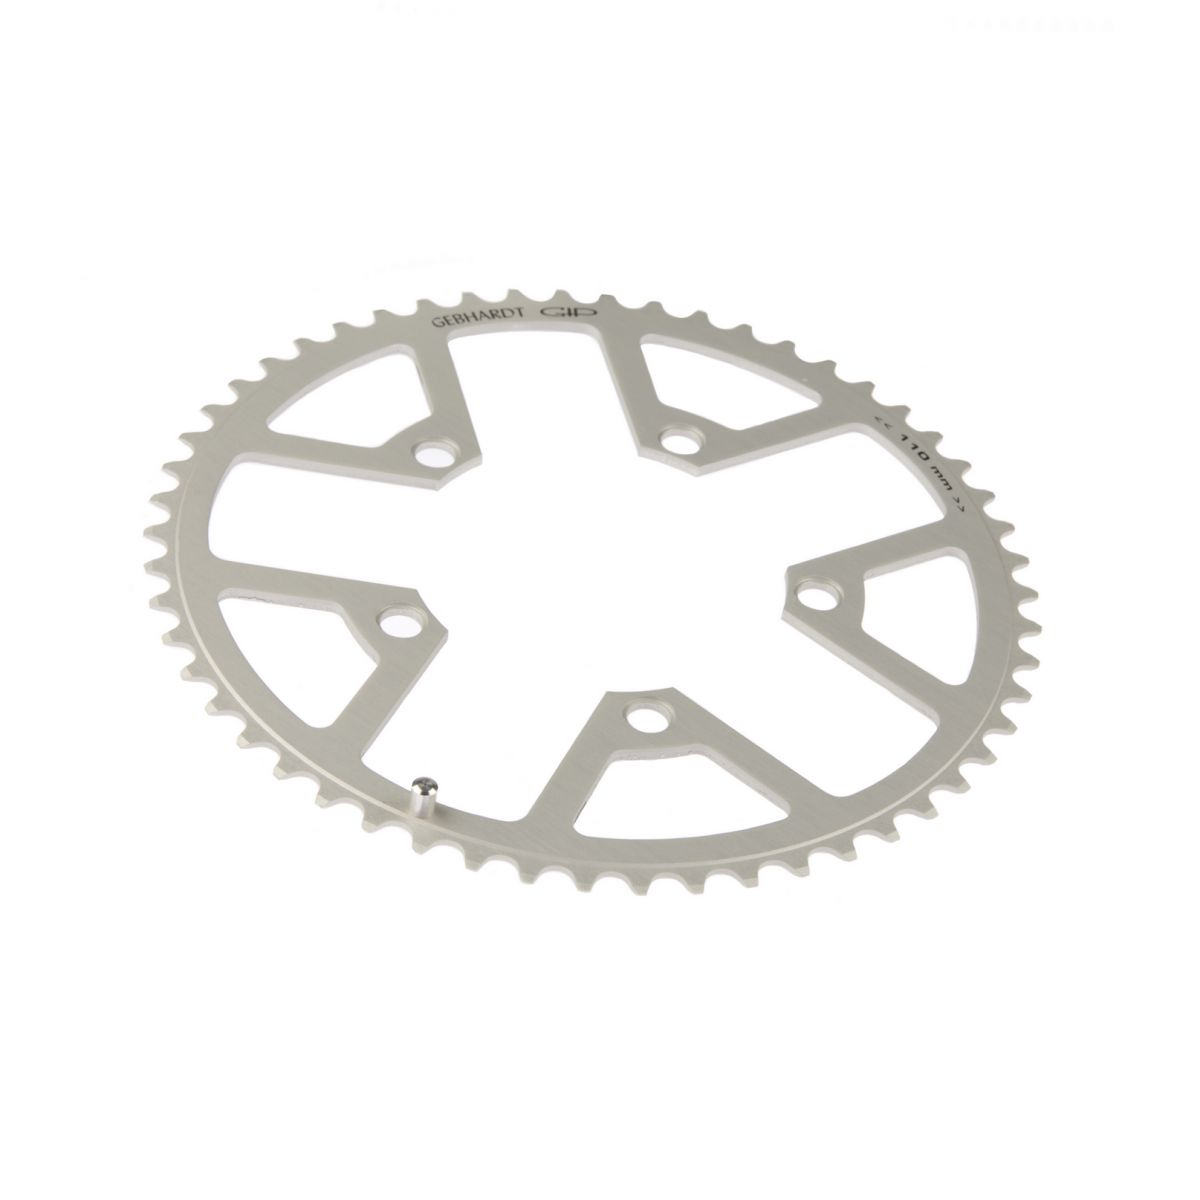 gebhardt chainring classic bcd 110 mm 5hole 40t silver